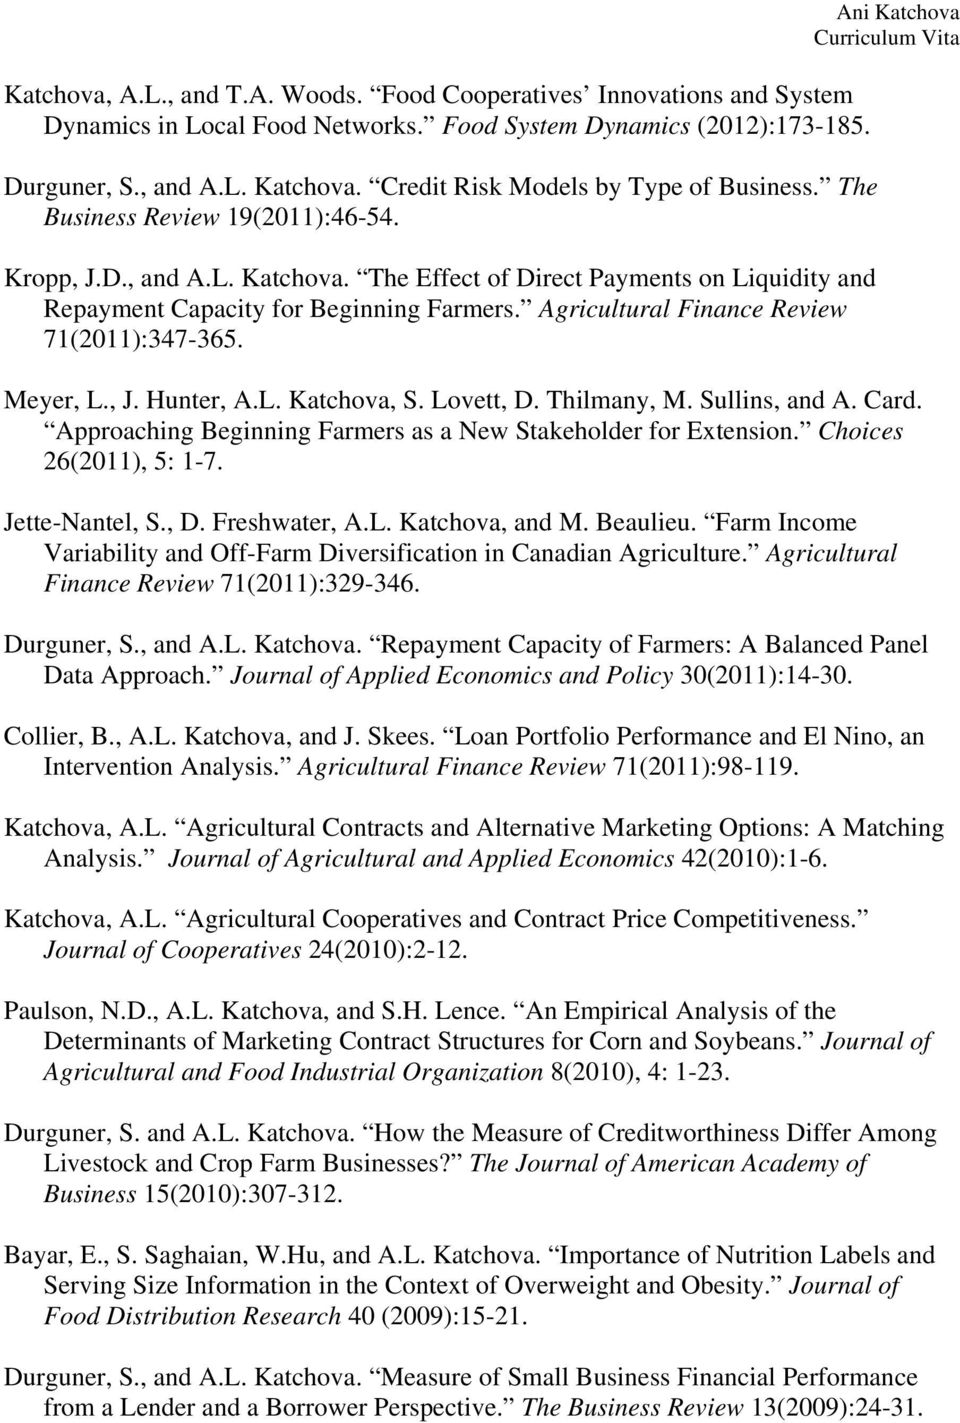 Agricultural Finance Review 71(2011):347-365. Ani Katchova Meyer, L., J. Hunter, A.L. Katchova, S. Lovett, D. Thilmany, M. Sullins, and A. Card.